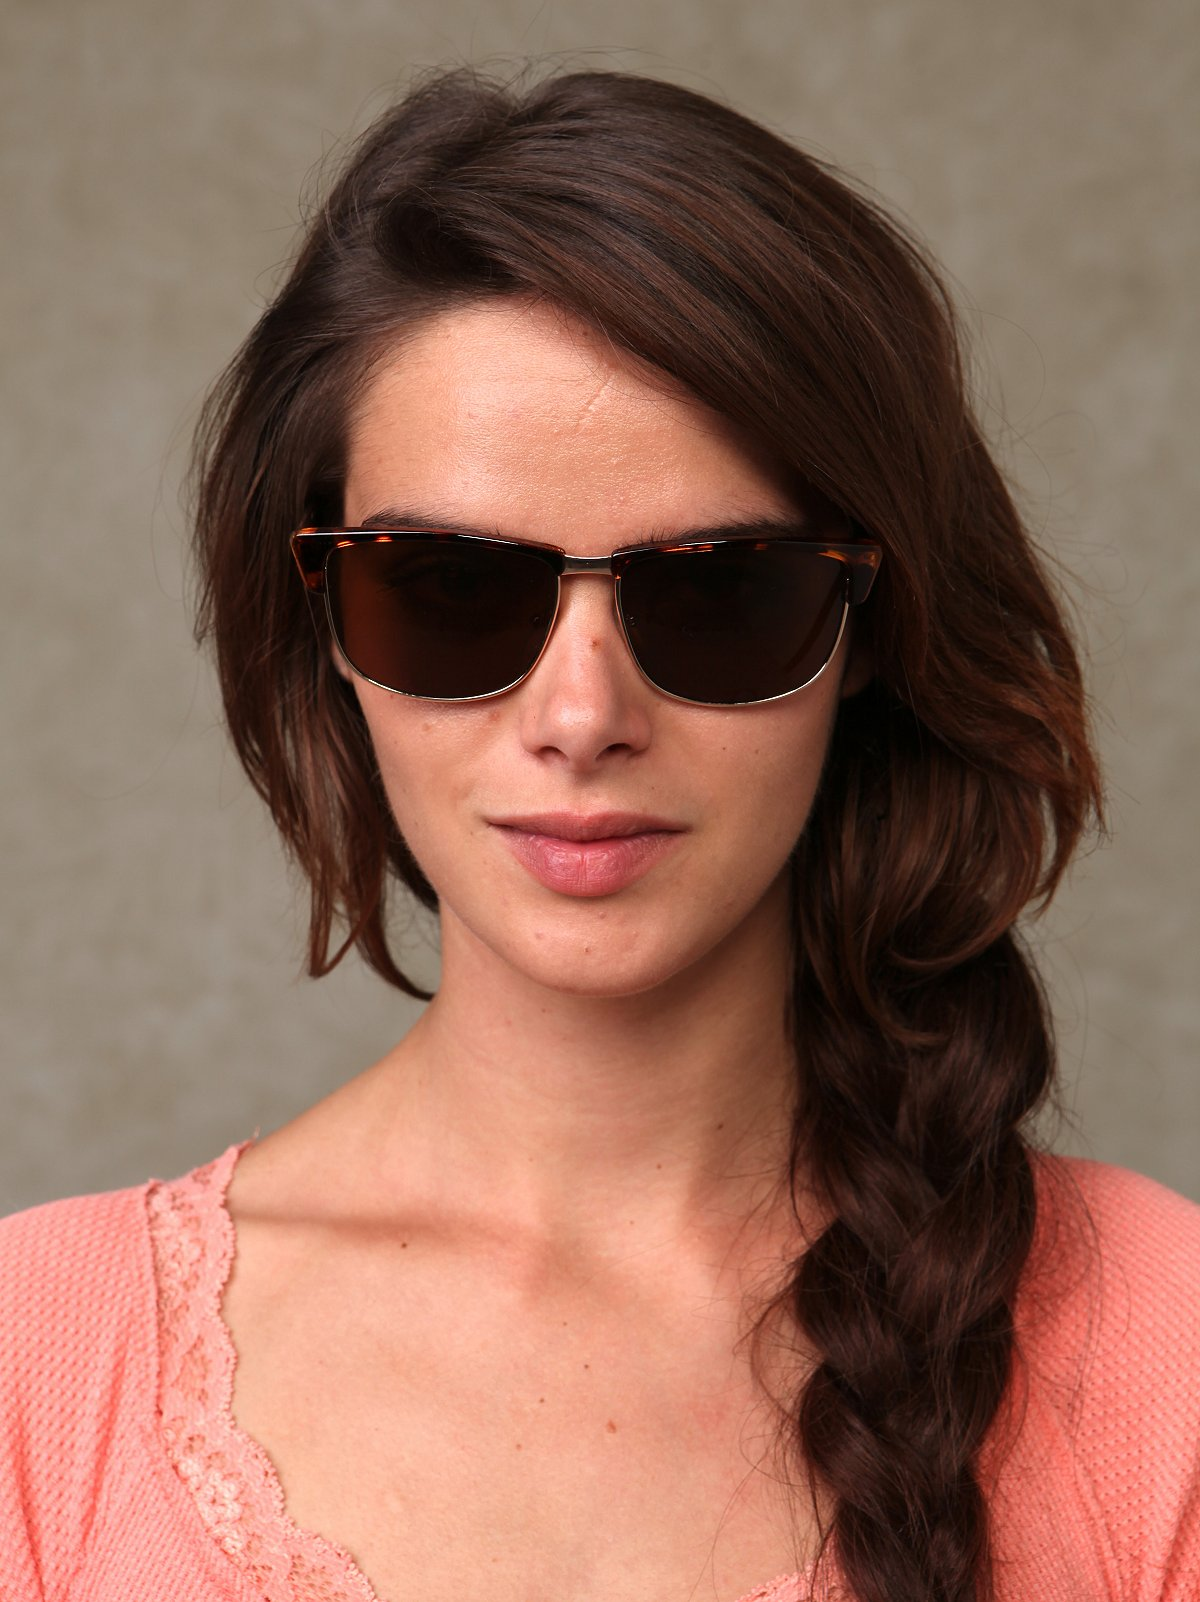 Margot Sunglasses